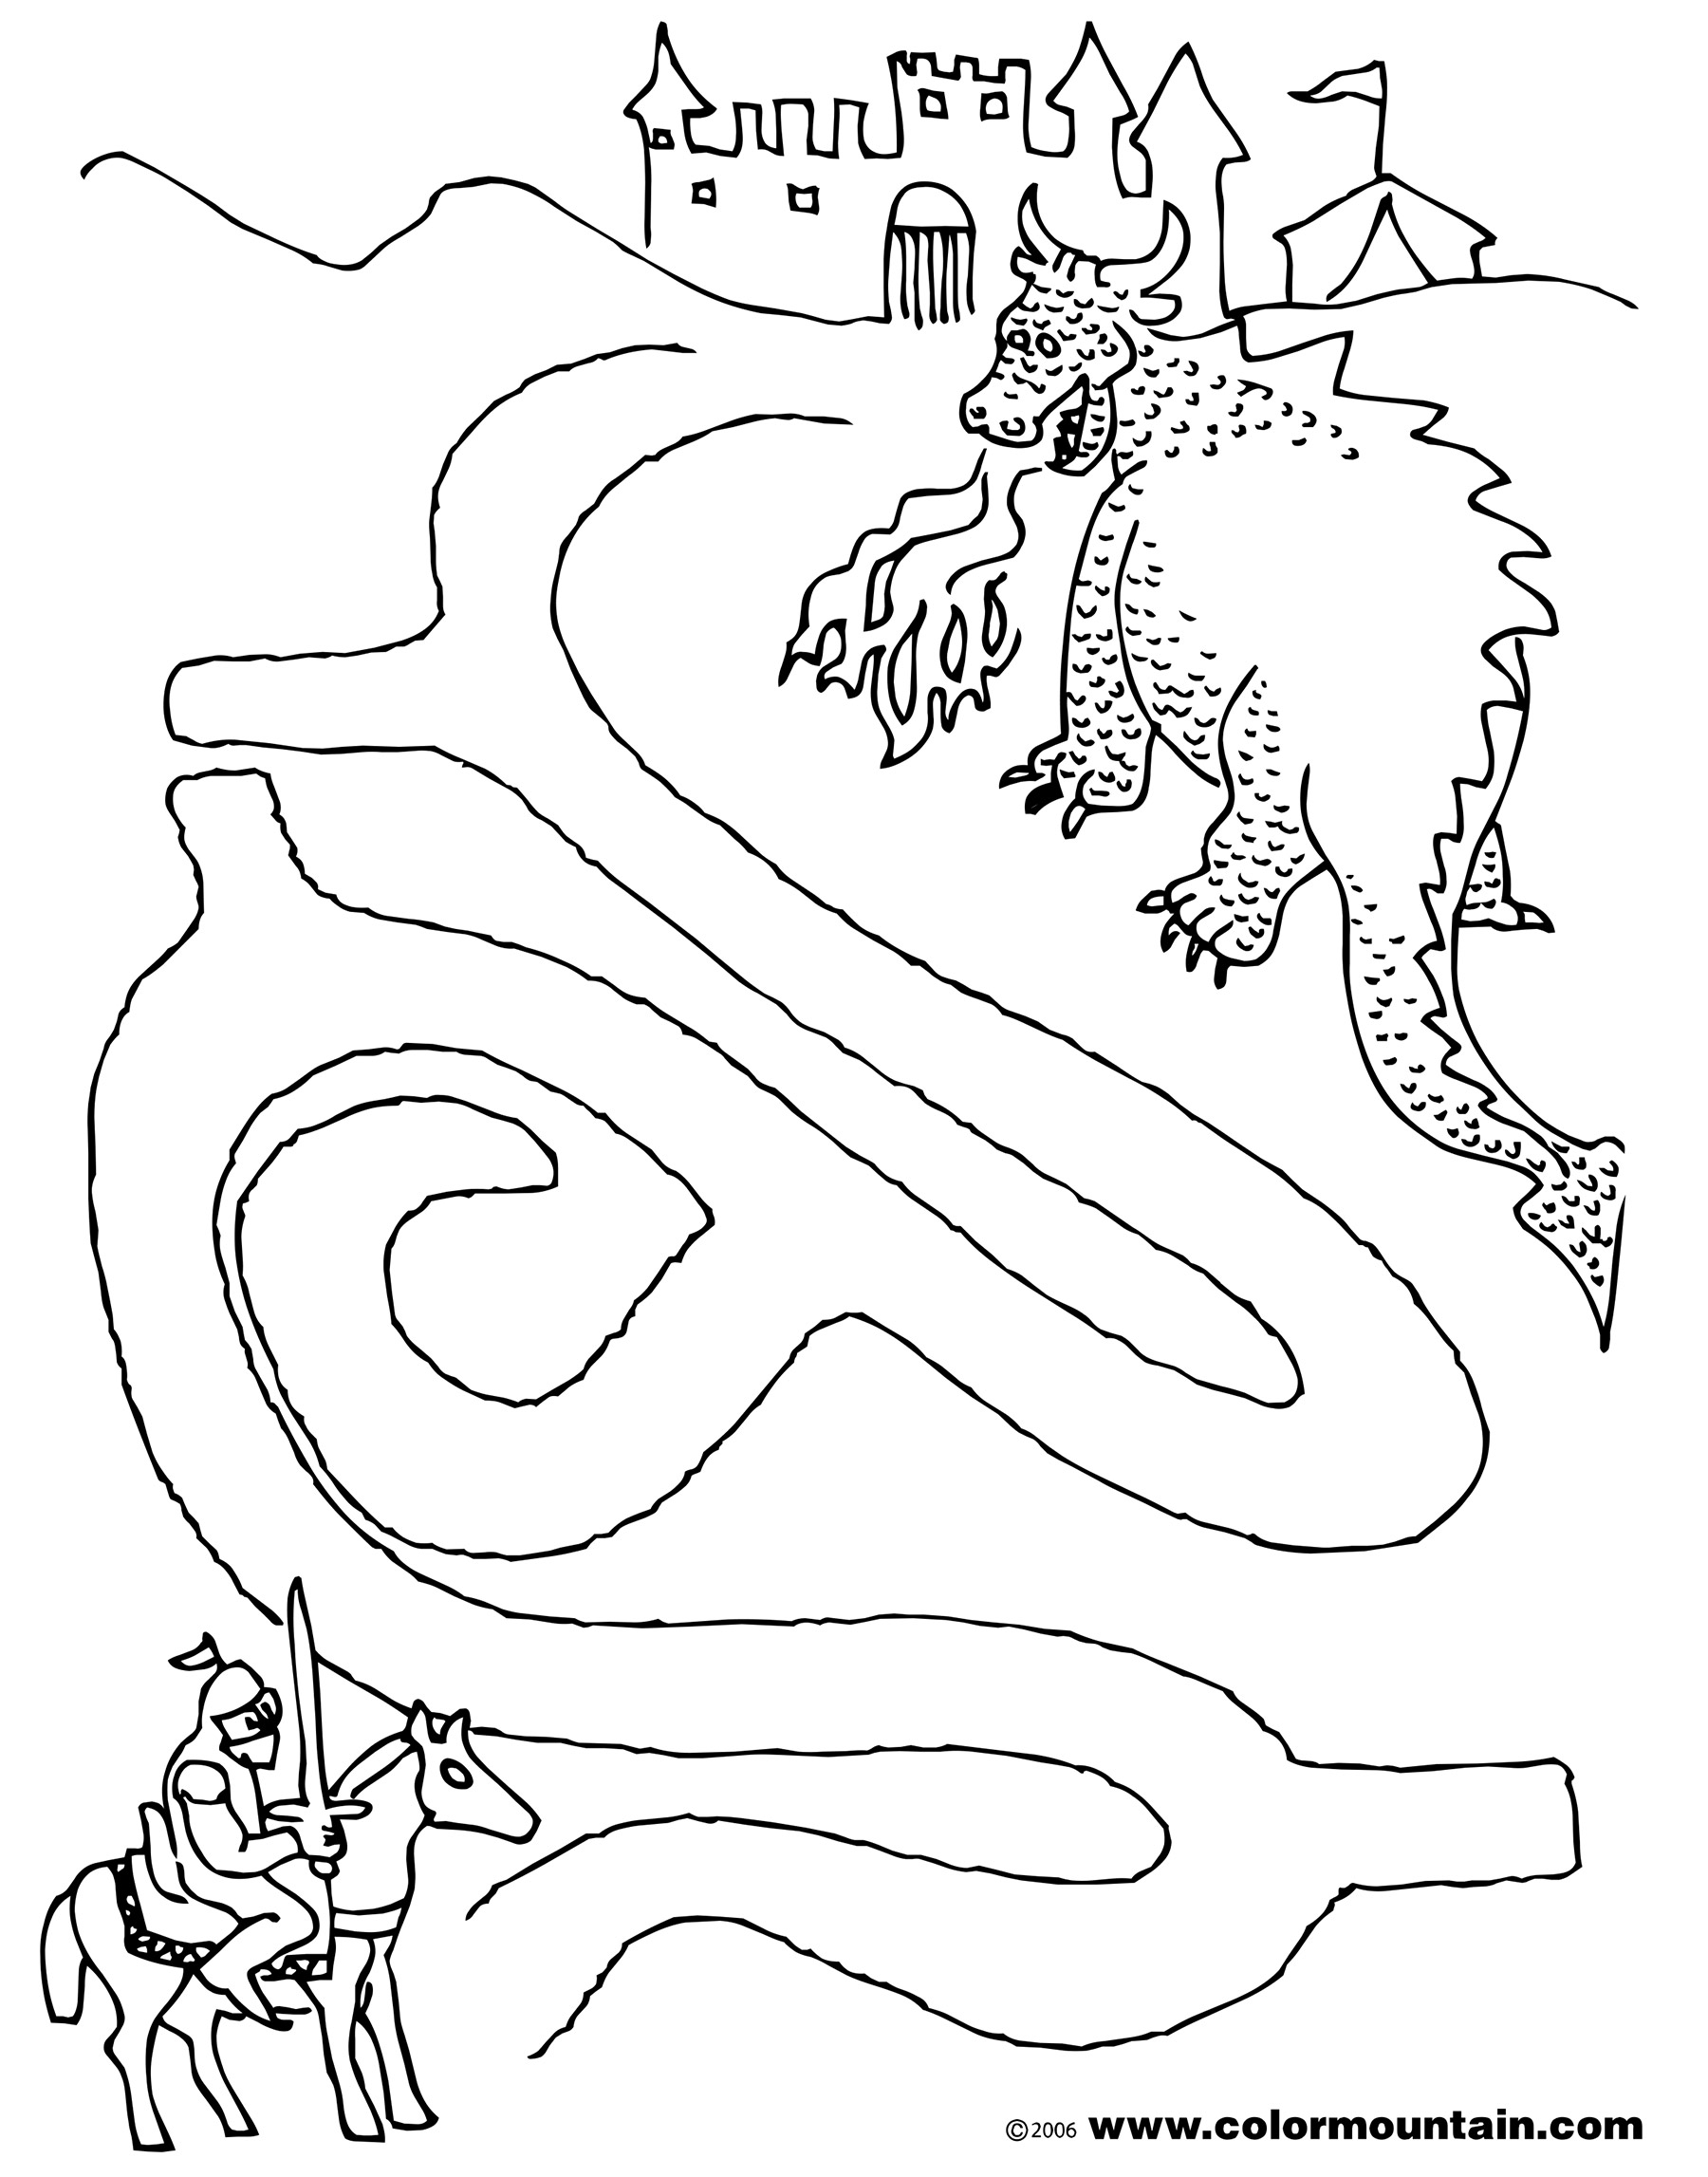 Coloring Printable Images Gallery Category Page 15